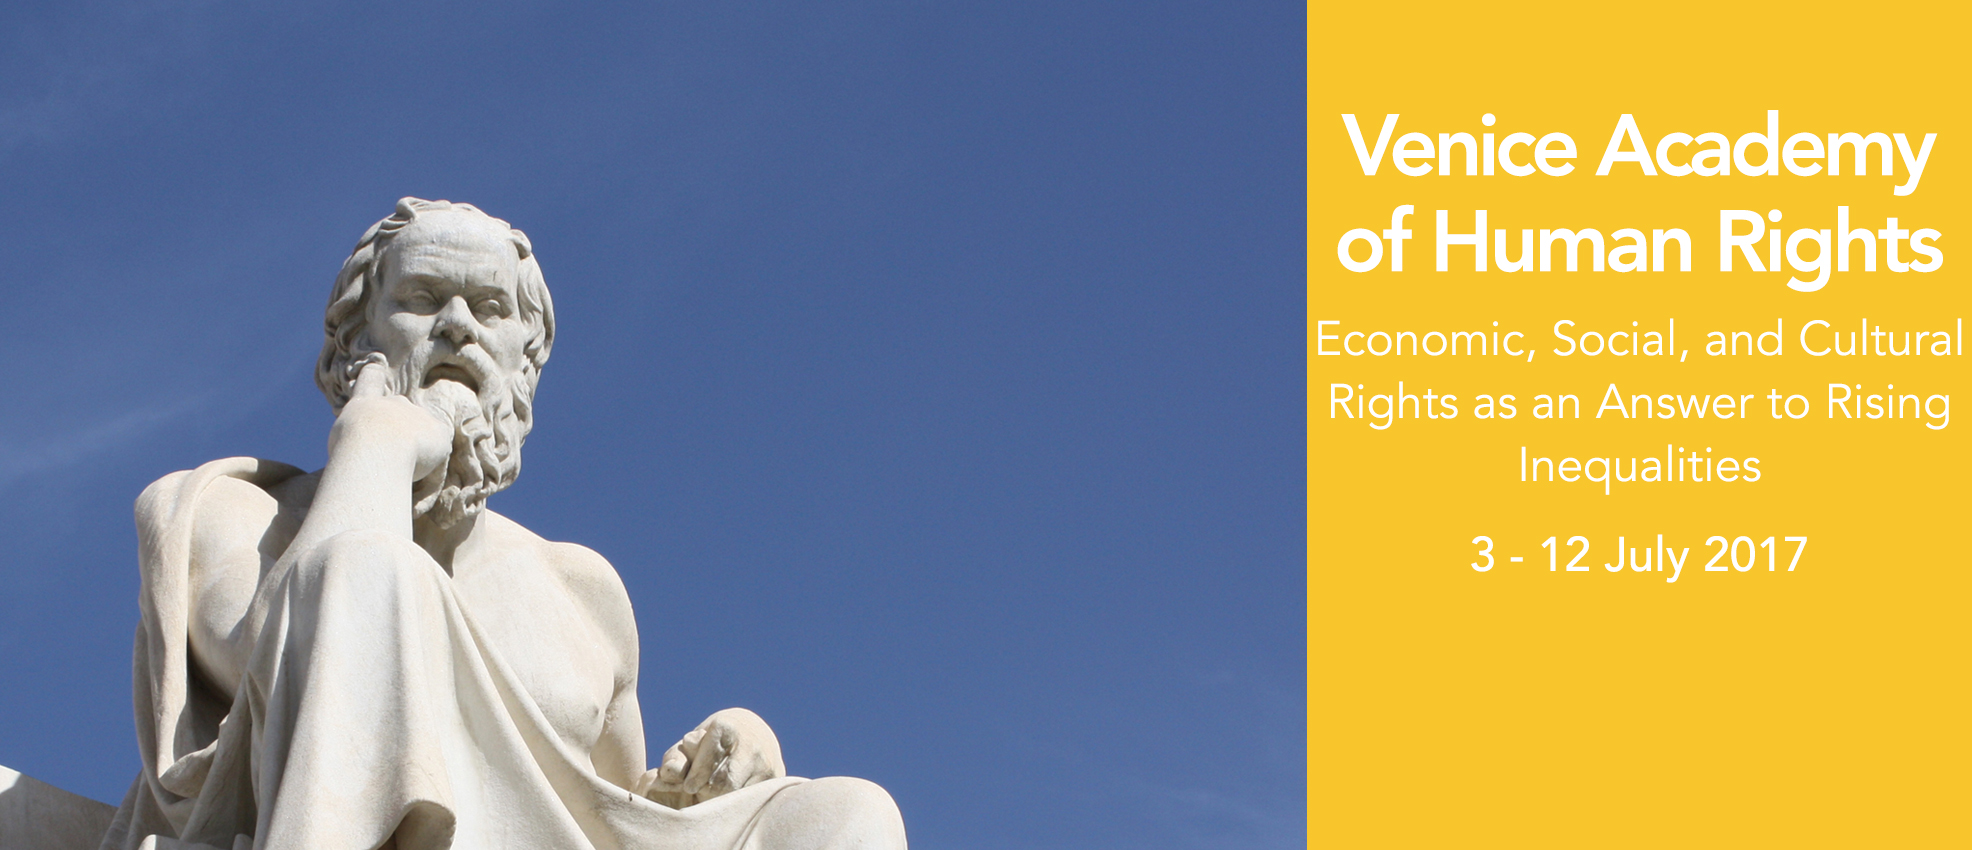 Venice Academy of Human Rights 2017 - Economic, social, cultural rights as an answer to rising inequalities programme